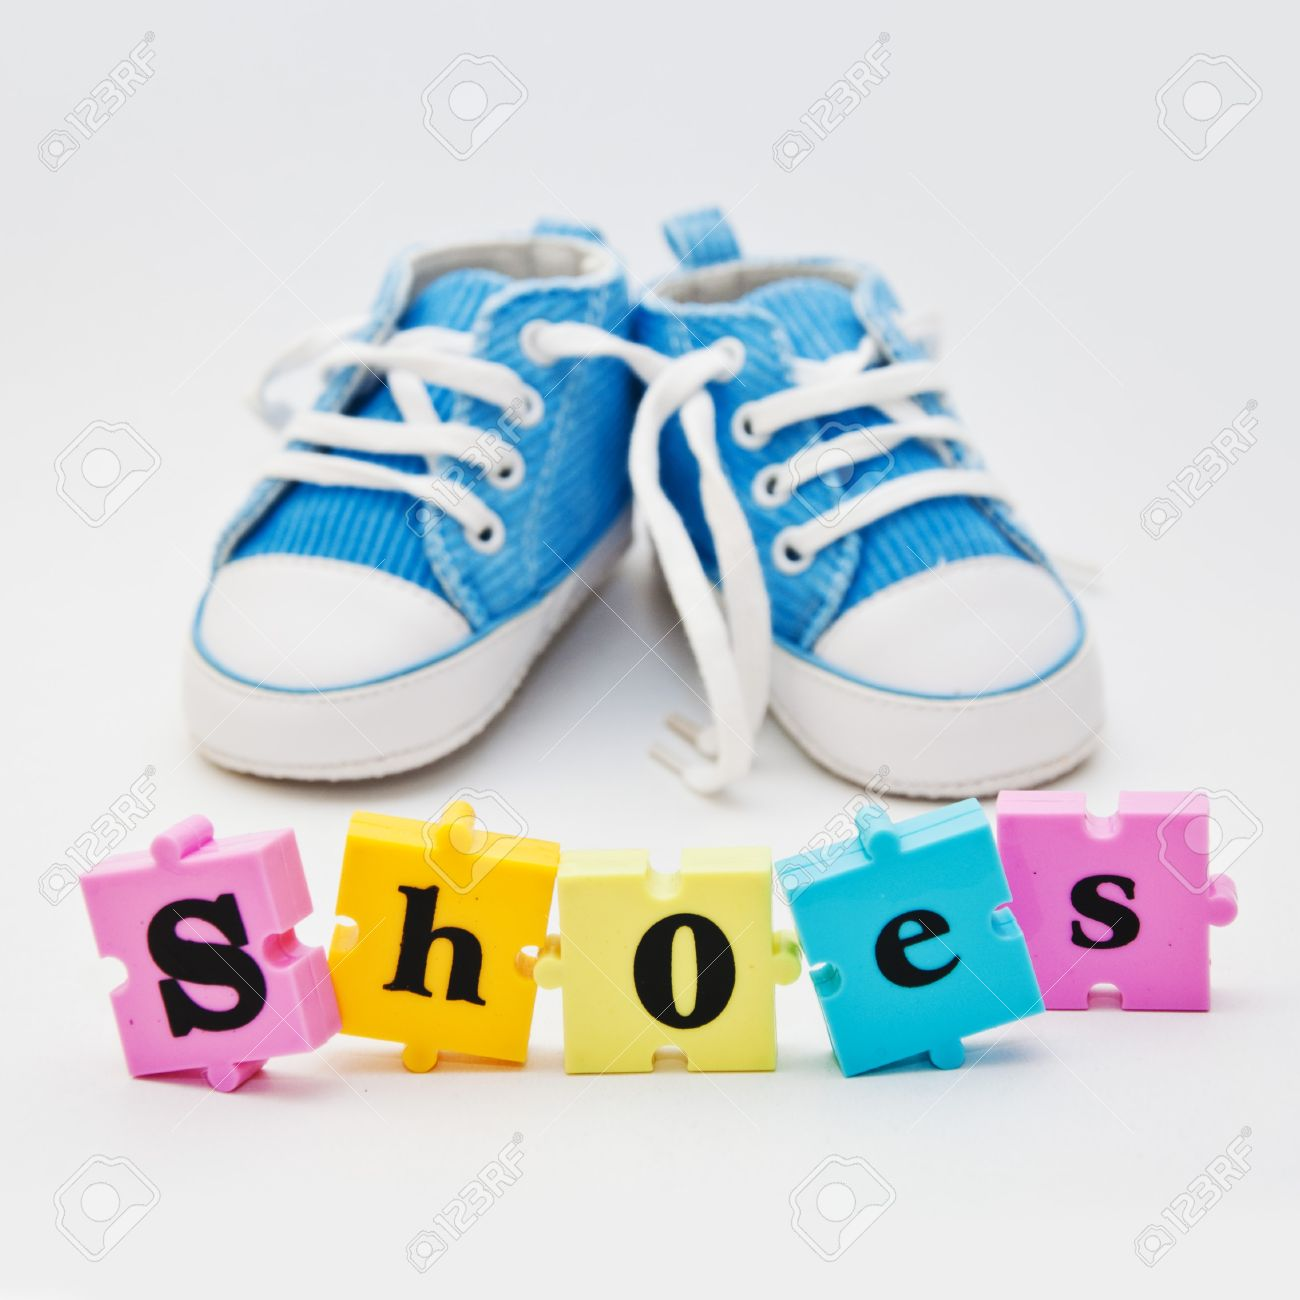 Blue baby shoes and a word puzzle pieces forming a word shoes stock blue baby shoes and a word puzzle pieces forming a word shoes stock photo 18975059 publicscrutiny Images